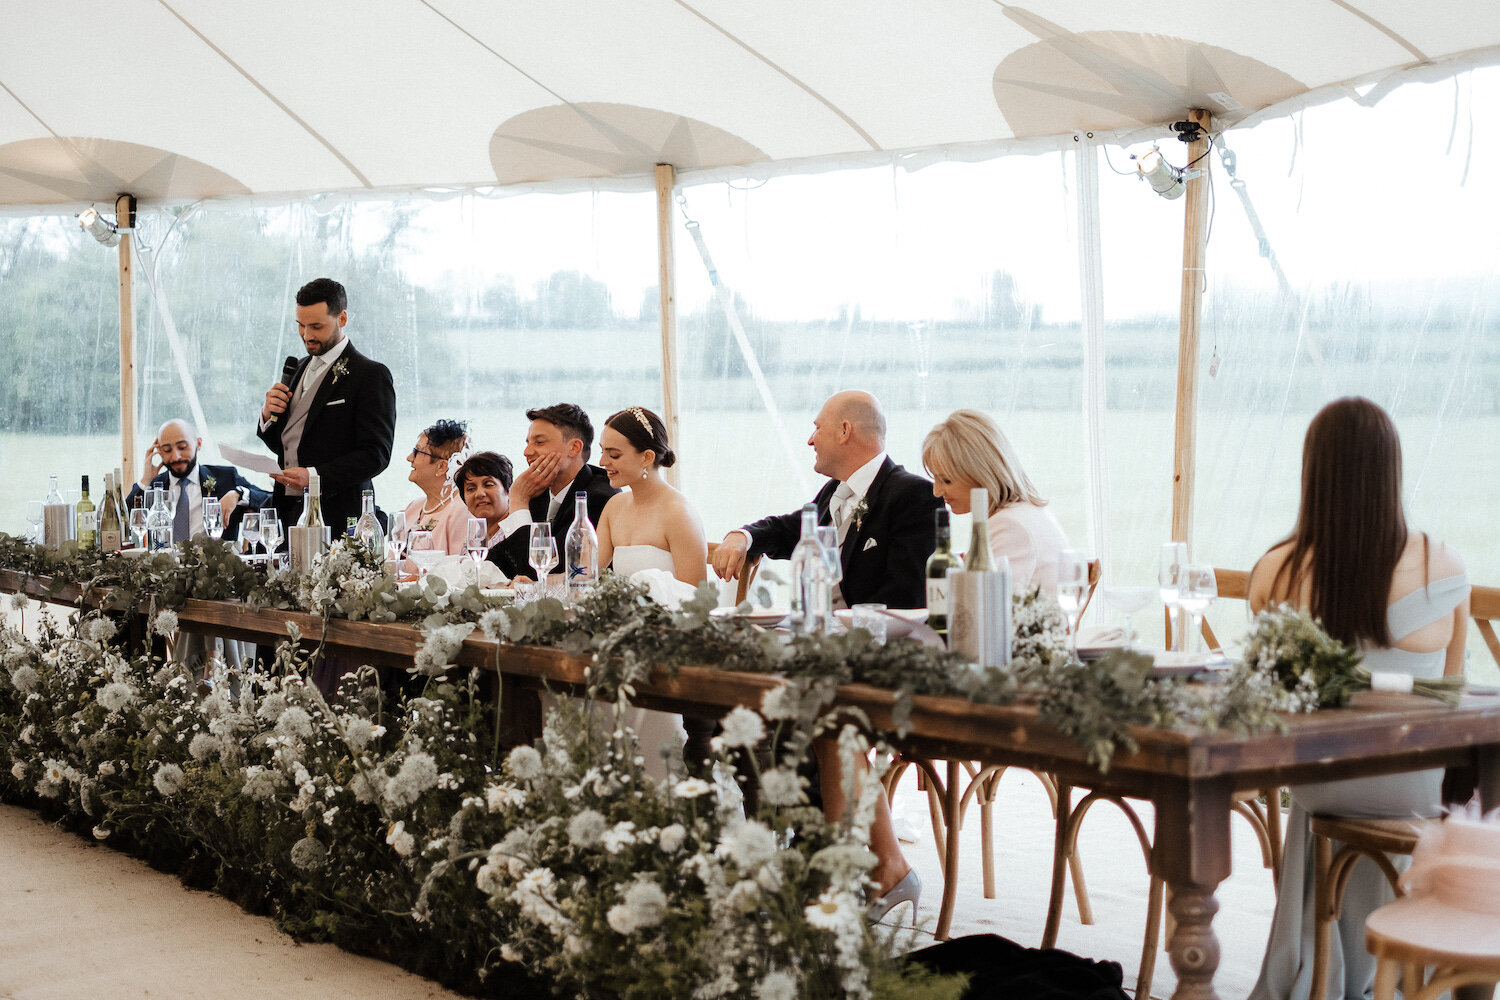 26_India-Sean-PapaKåta-Sperry-Tent-Wedding-Caitlin-Jones-Photography-Top-Table.jpg